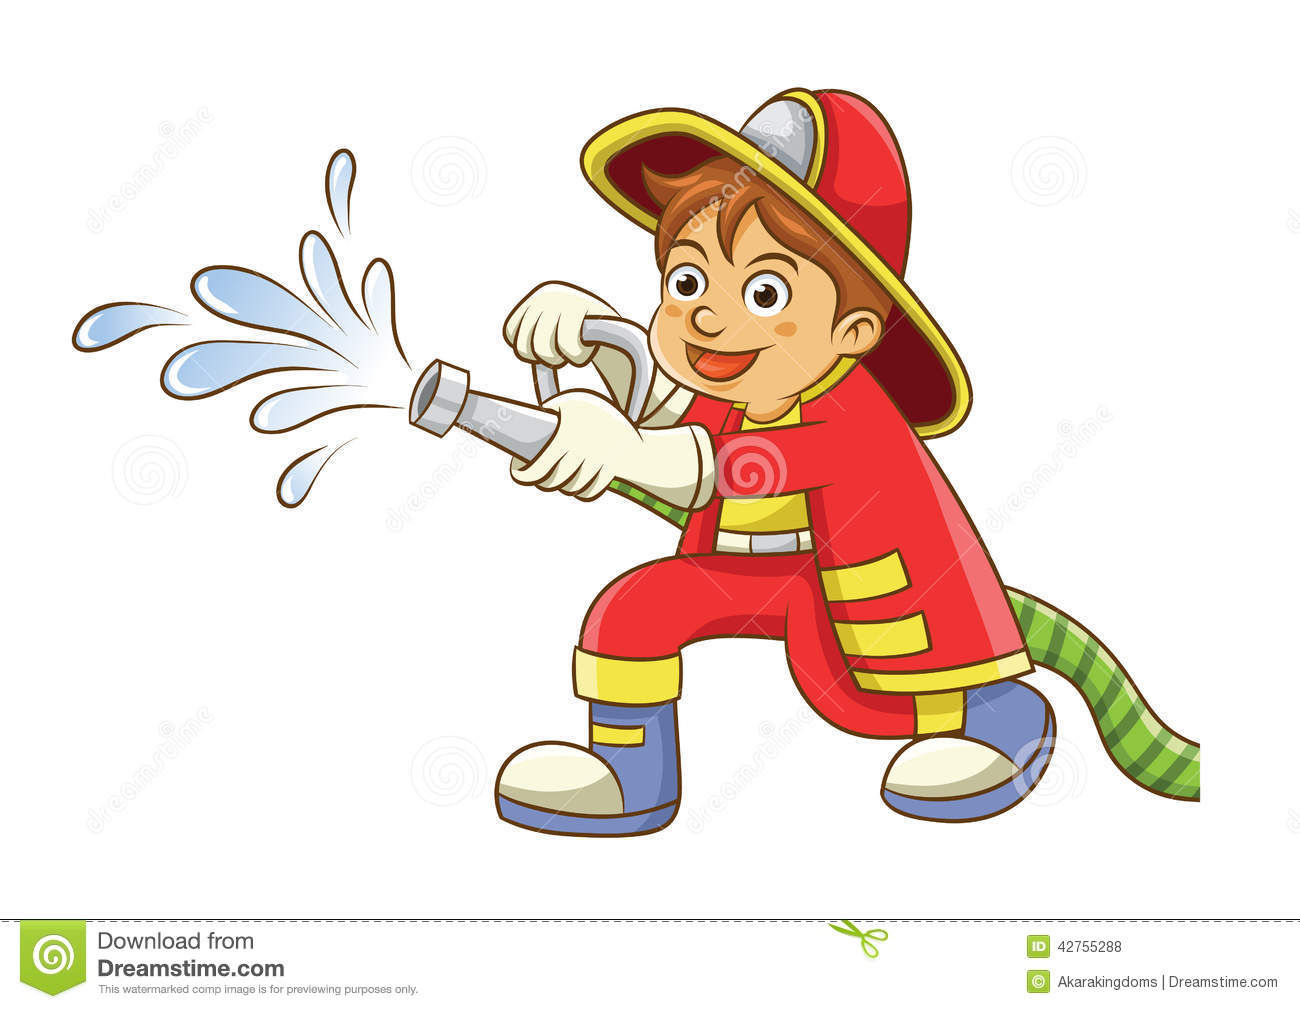 firefighter clip art images clipart panda free clipart images rh clipartpanda com firefighter clip art free images firefighter clip art to color